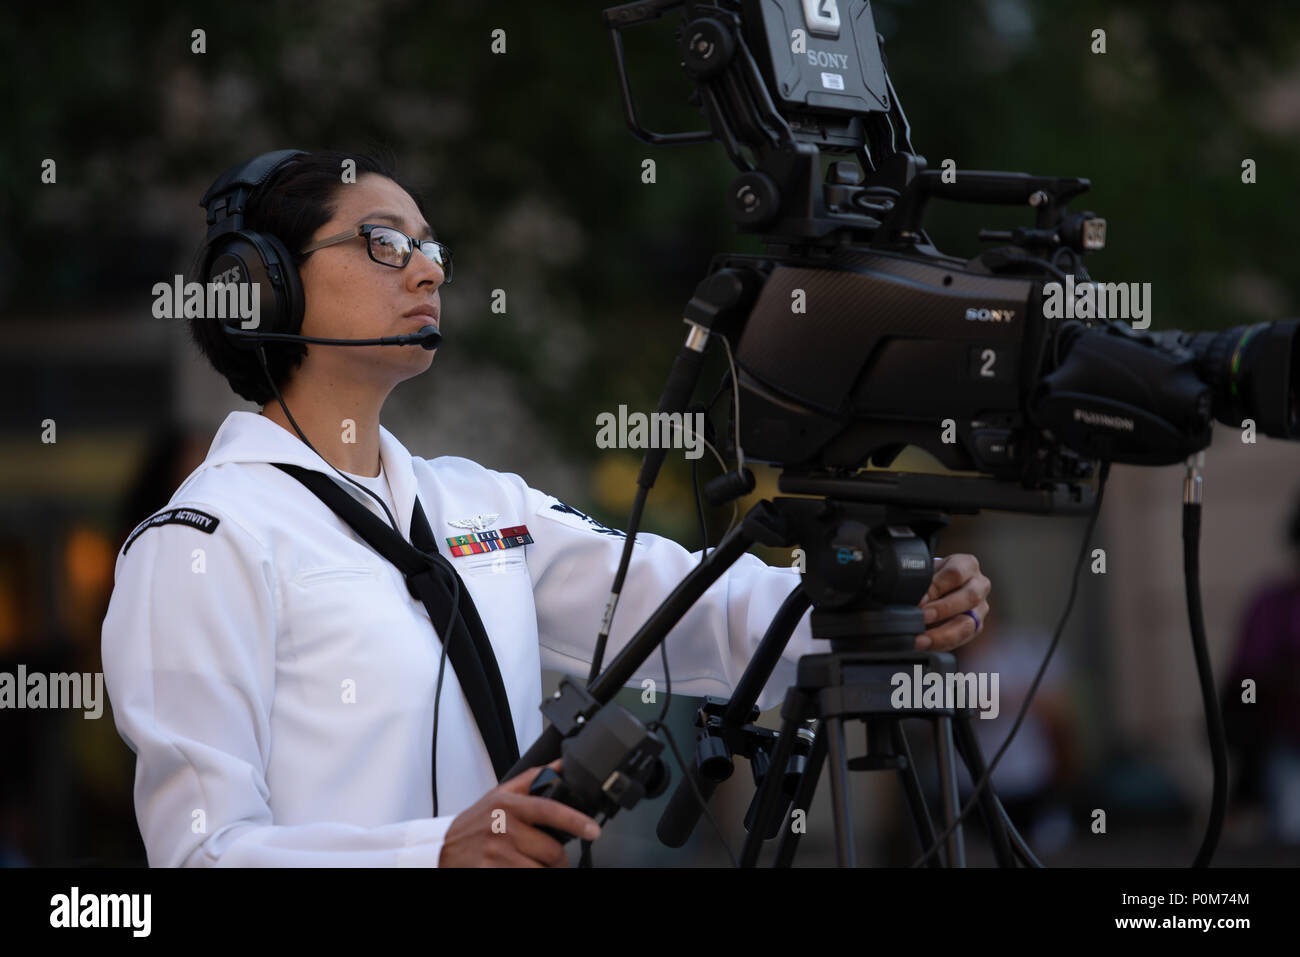 180605-N-HG258-1050 WASHINGTON (June 5, 2018) Mass Communications Specalist 2nd Class Anita Newman videotapes the commemoration of the 76th anniversary of the Battle of Midway at the U.S. Navy Memorial in Washington, D.C. The Battle of Midway stands as one of the U.S. Navy's most historically significant naval battles. Fought on the high seas of the Pacific more than half a century ago, this battle altered the course of the war in the Pacific and thereby shaped the outcome of world events. (U.S. Navy photo by Senior Chief Musician Stephen Hassay/Released) - Stock Image